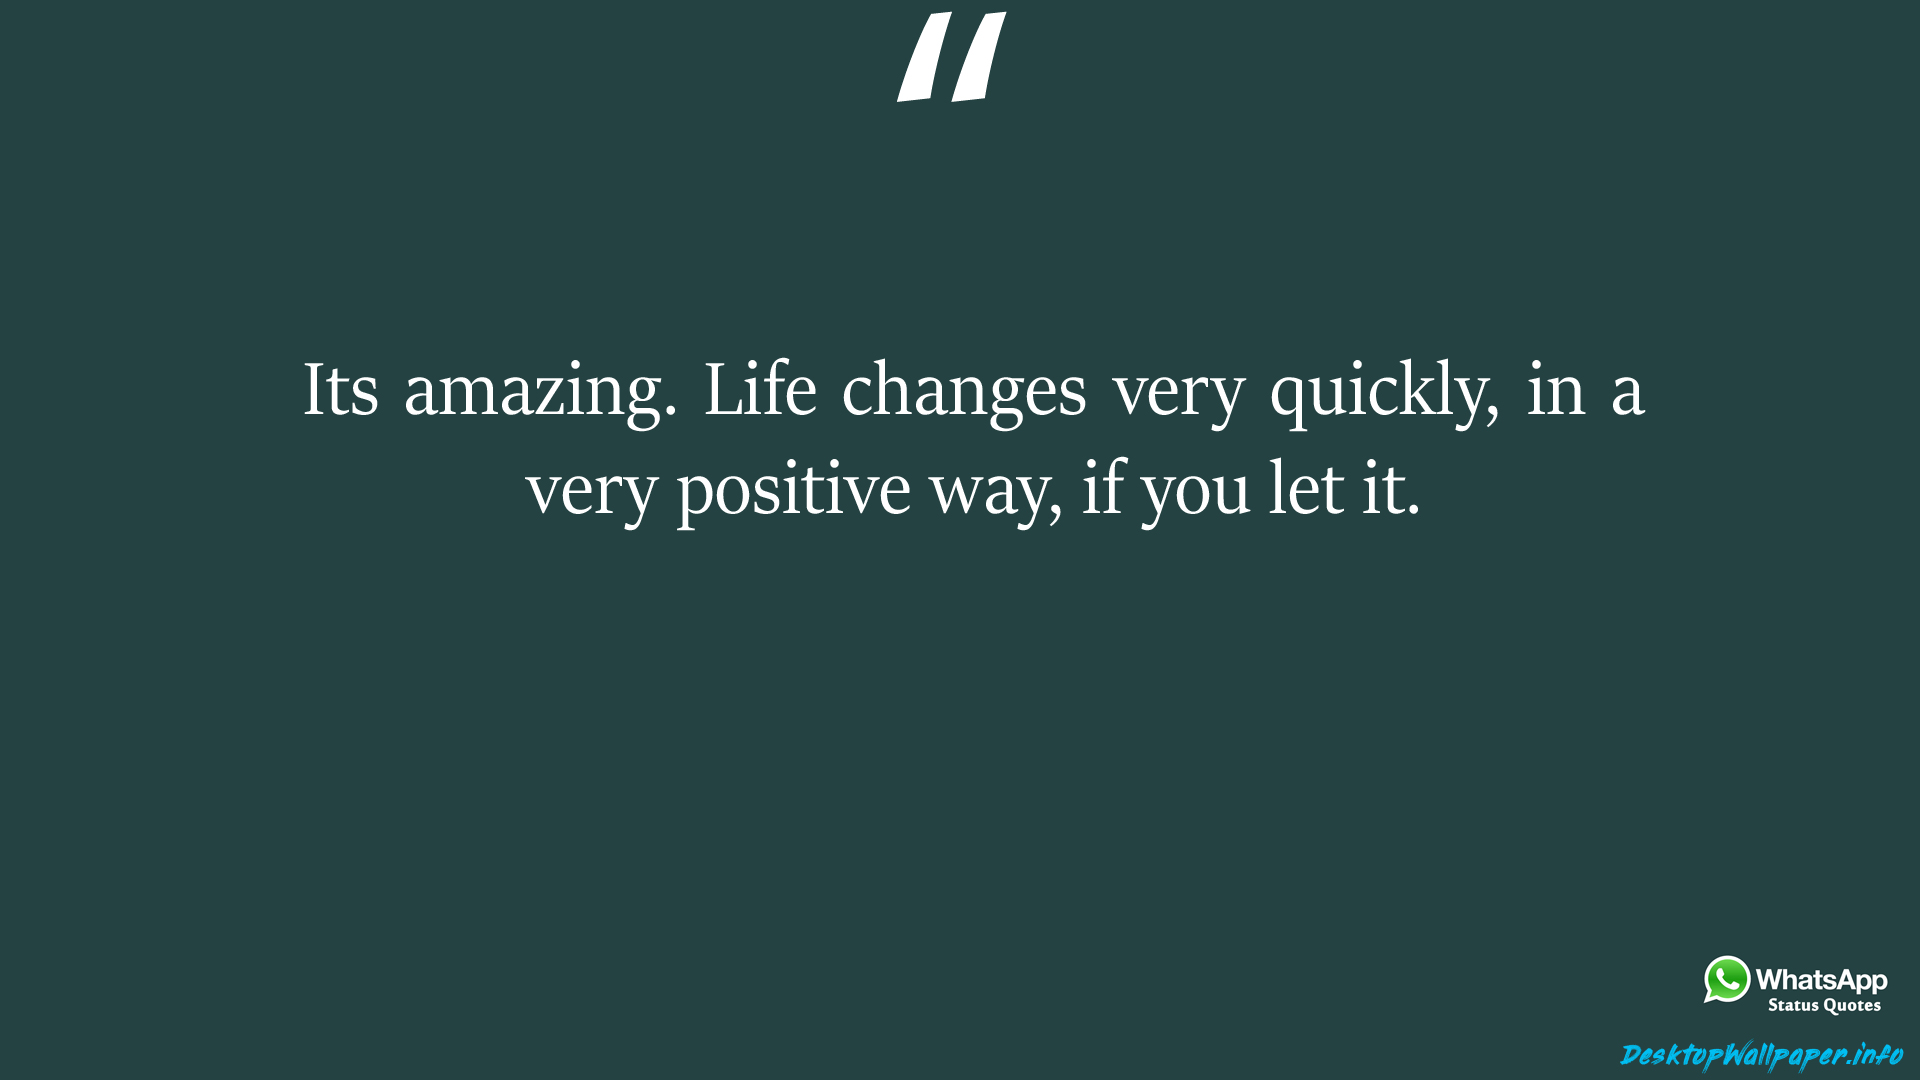 Its amazing Life changes very quickly in a very positive way